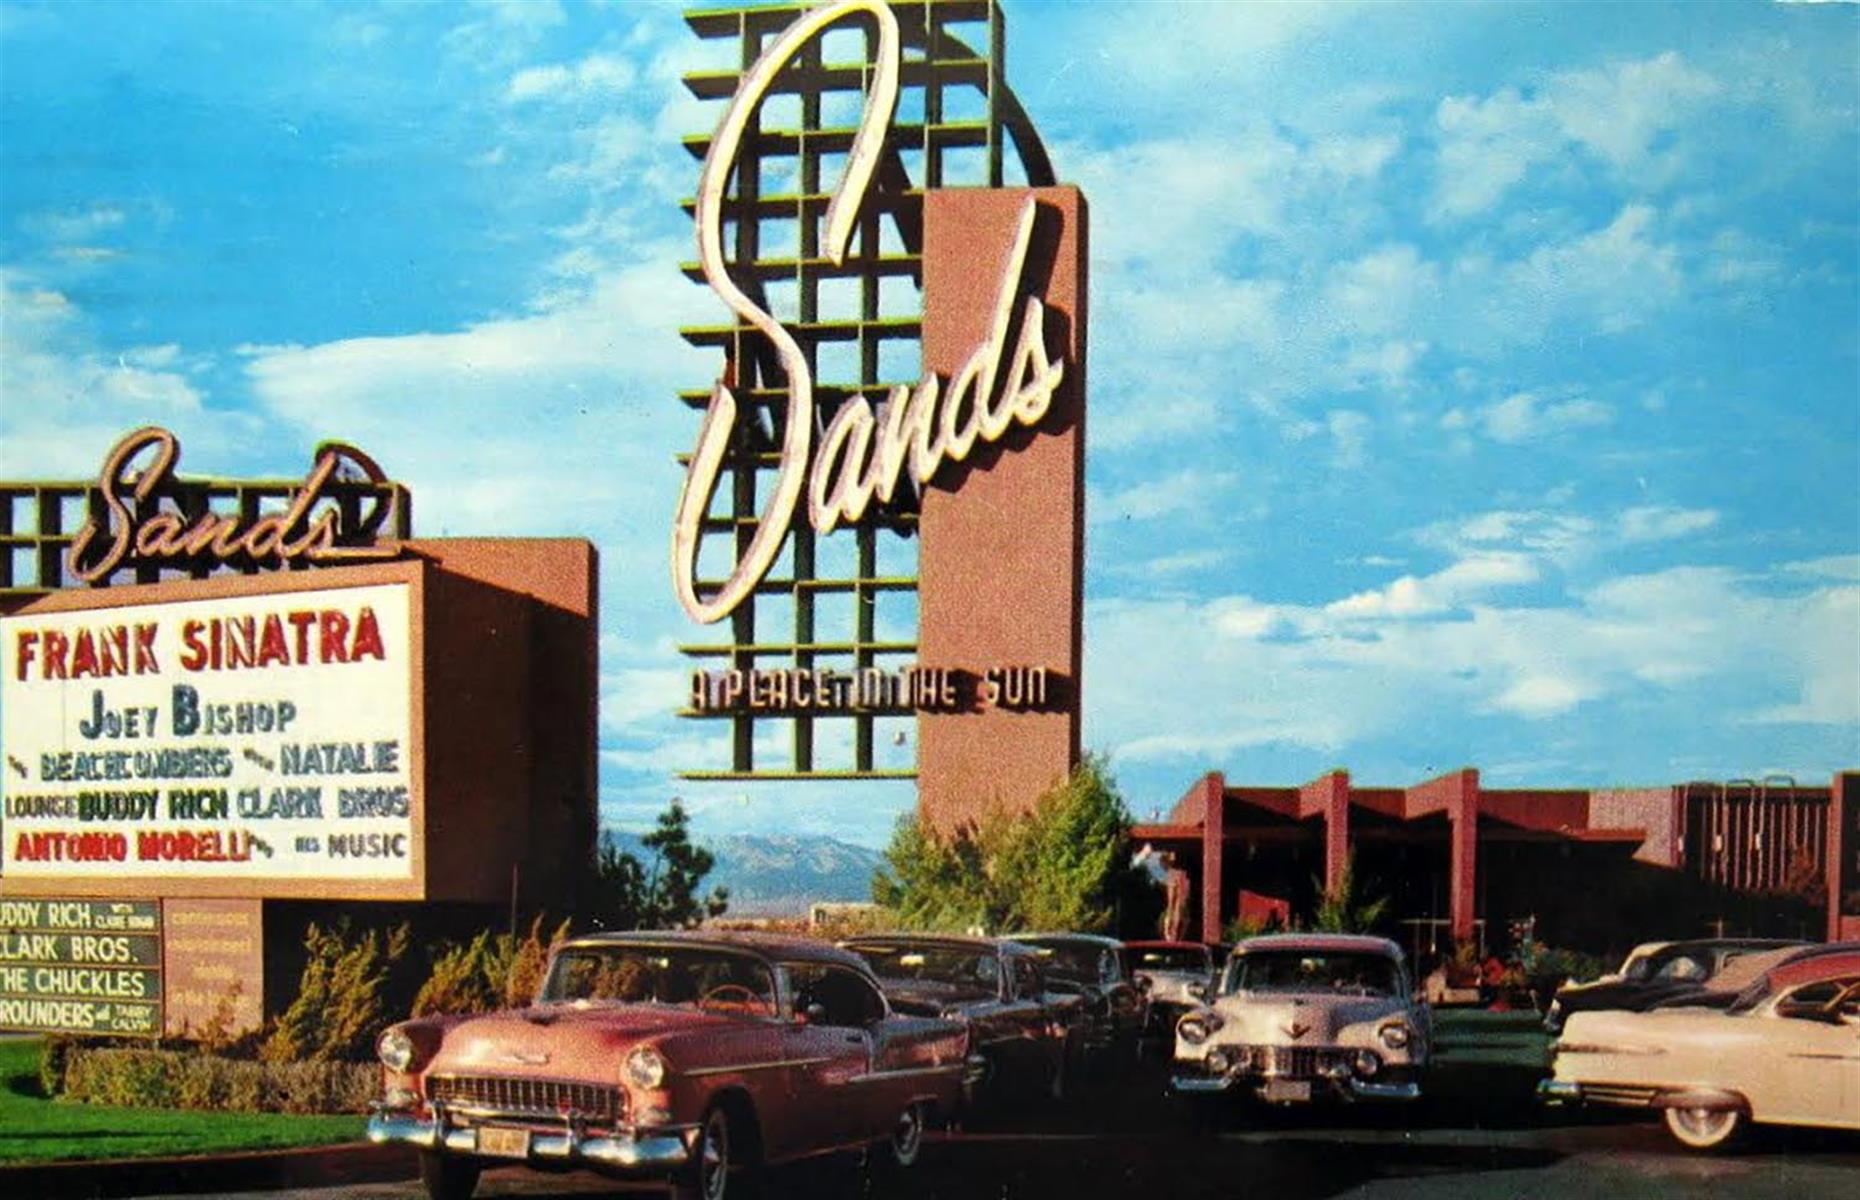 Slide 17 of 34: Several of Sin City's most famous hotels opened in the 1950s, solidifying Las Vegas' position as the gambling and entertainment capital of the US. In 1952, the Sahara and the Sands opened, and Riviera, Royal Nevada and Dunes followed in 1955. Tropicana launched on 4 April 1957 and Stardust – the largest Nevada hotel at the time – opened in 1958. Collectively, these hotels are largely responsible for bringing about Las Vegas' Golden Age.